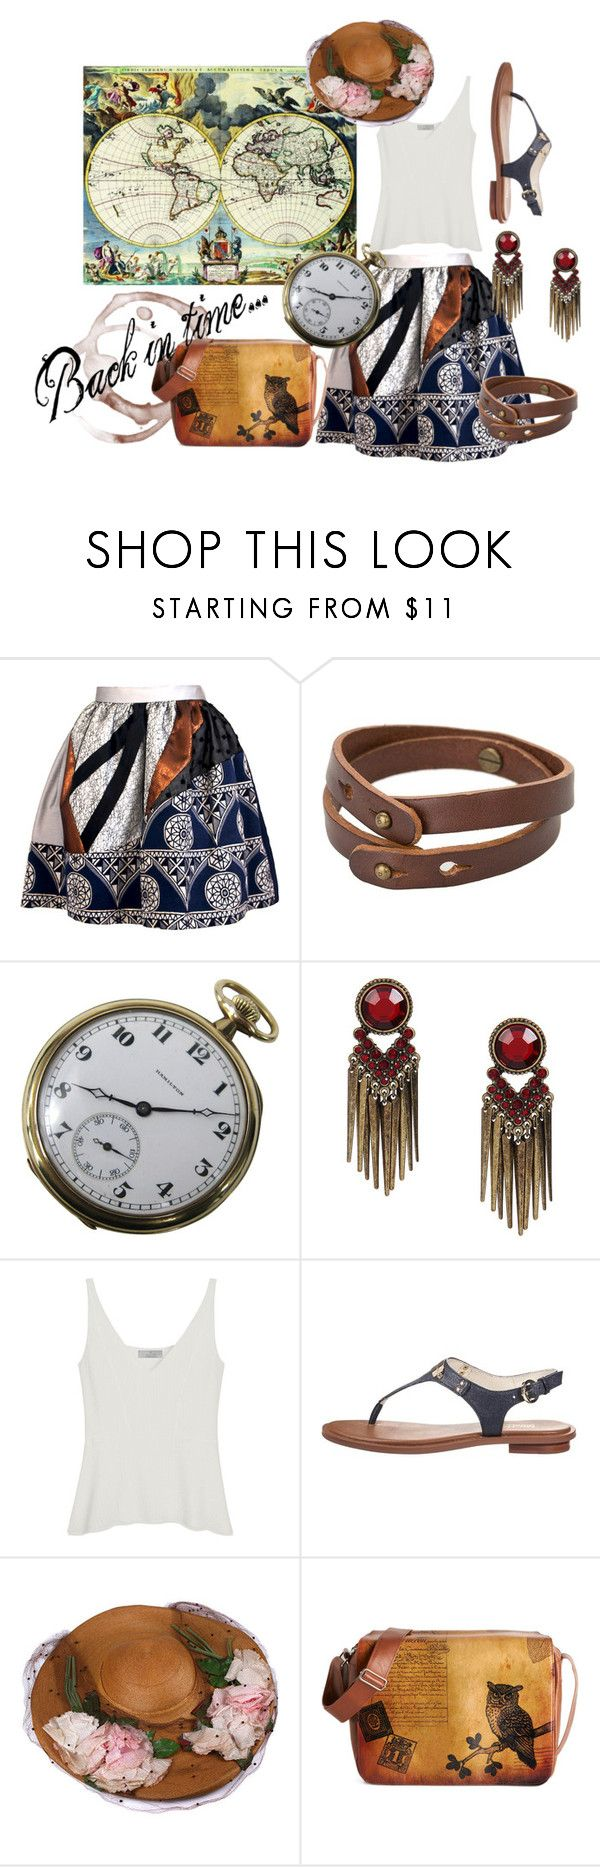 """""""Inspired by Bastille, Pompeii #1"""" by alinabathory ❤ liked on Polyvore featuring Joana Almagro, MANGO, Mulberry, MICHAEL Michael Kors, springbreak, trends, summerbreak, ethno and springgetaway"""